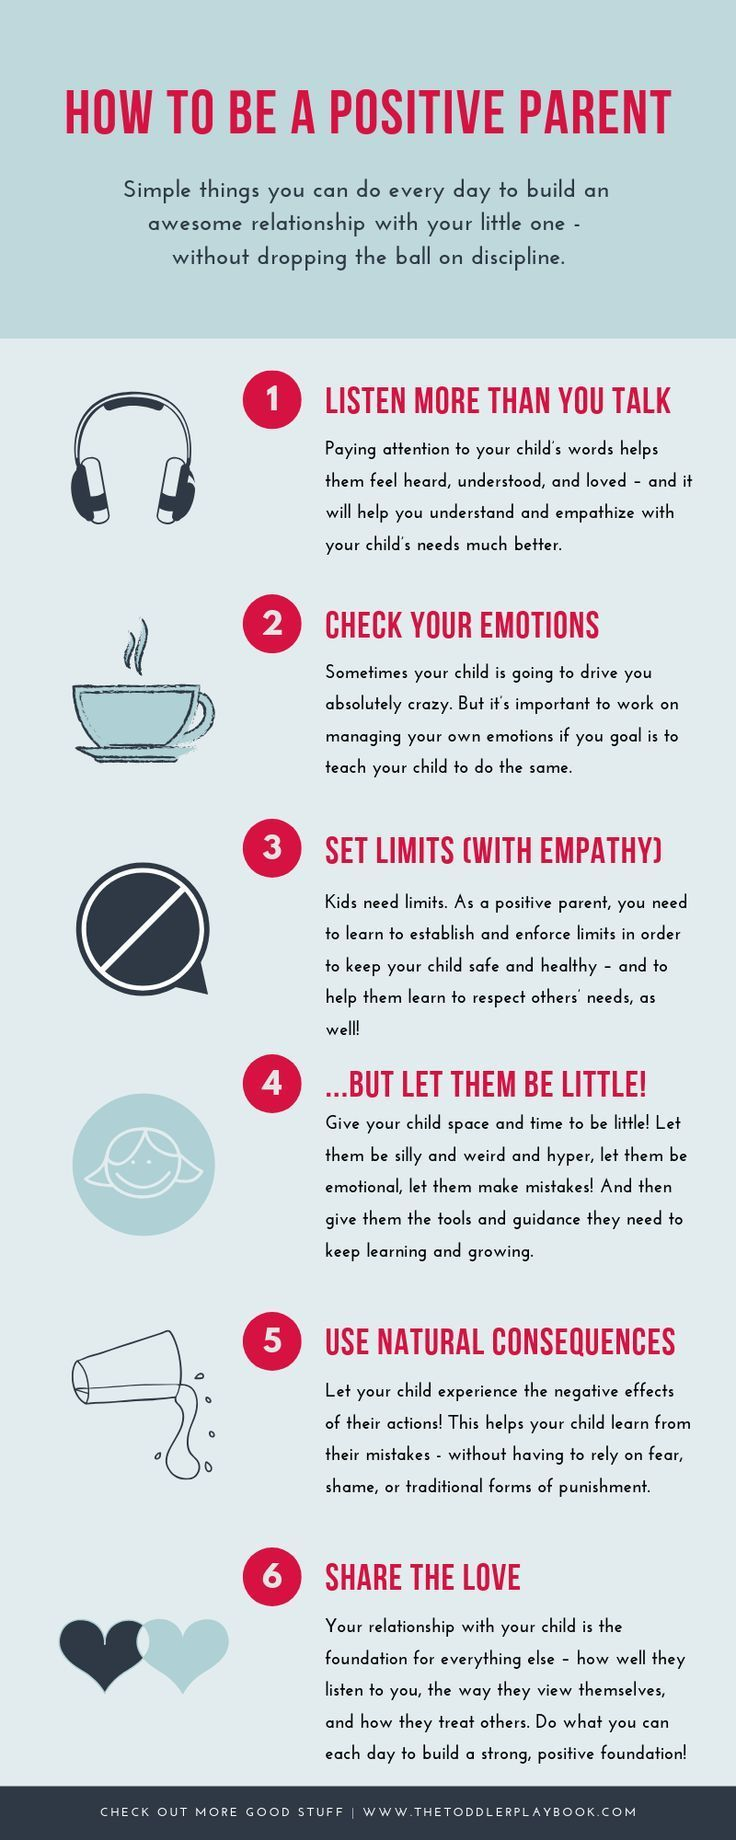 6 Simple Things Positive Parents Do Every Day is part of Smart parenting, Parenting teens, Good parenting, Parenting toddlers, Gentle parenting, Positive parenting - Learn what positive parents do every day to build a healthy relationship with their little one  without dropping the ball on discipline